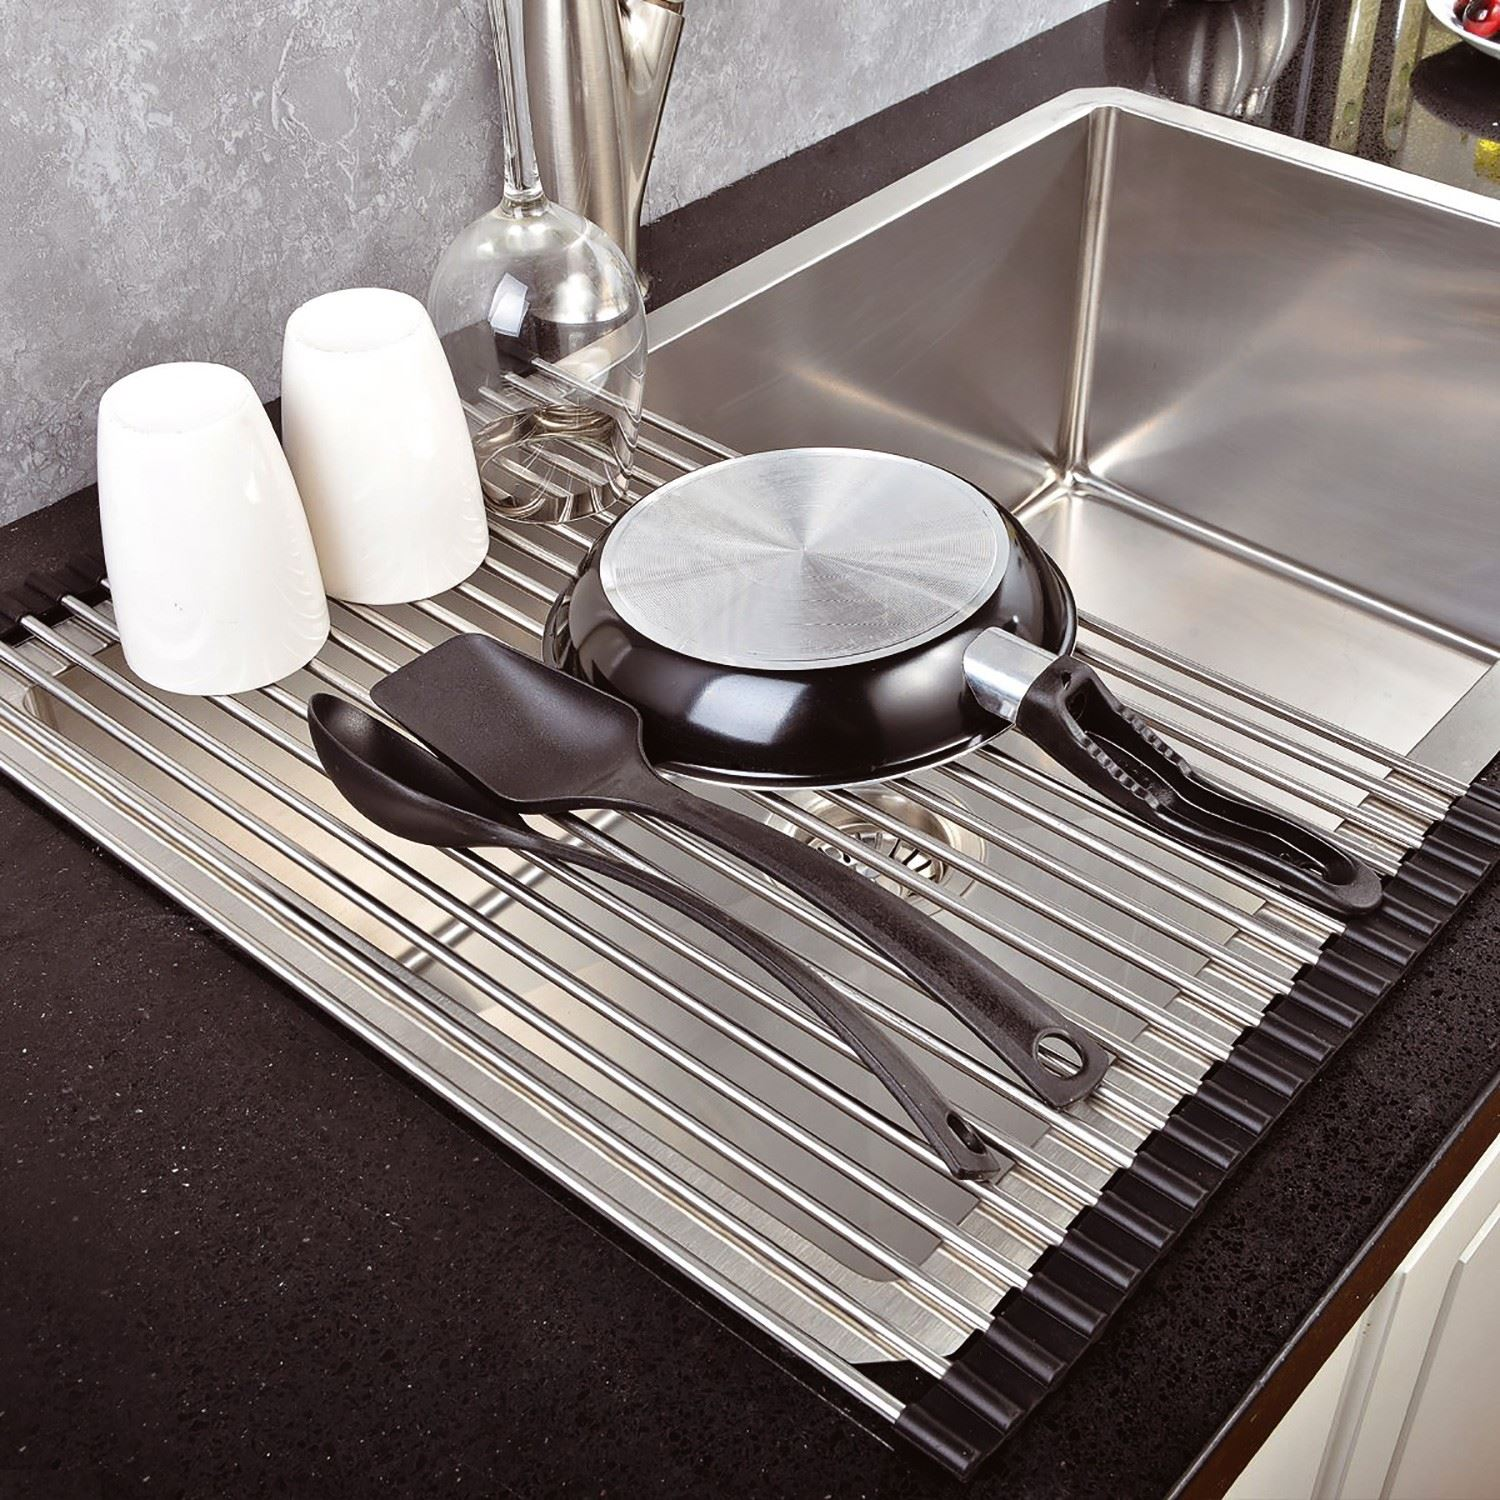 over the sink kitchen dish drainer drying rack roll up foldinng stainless steel ebay. Black Bedroom Furniture Sets. Home Design Ideas